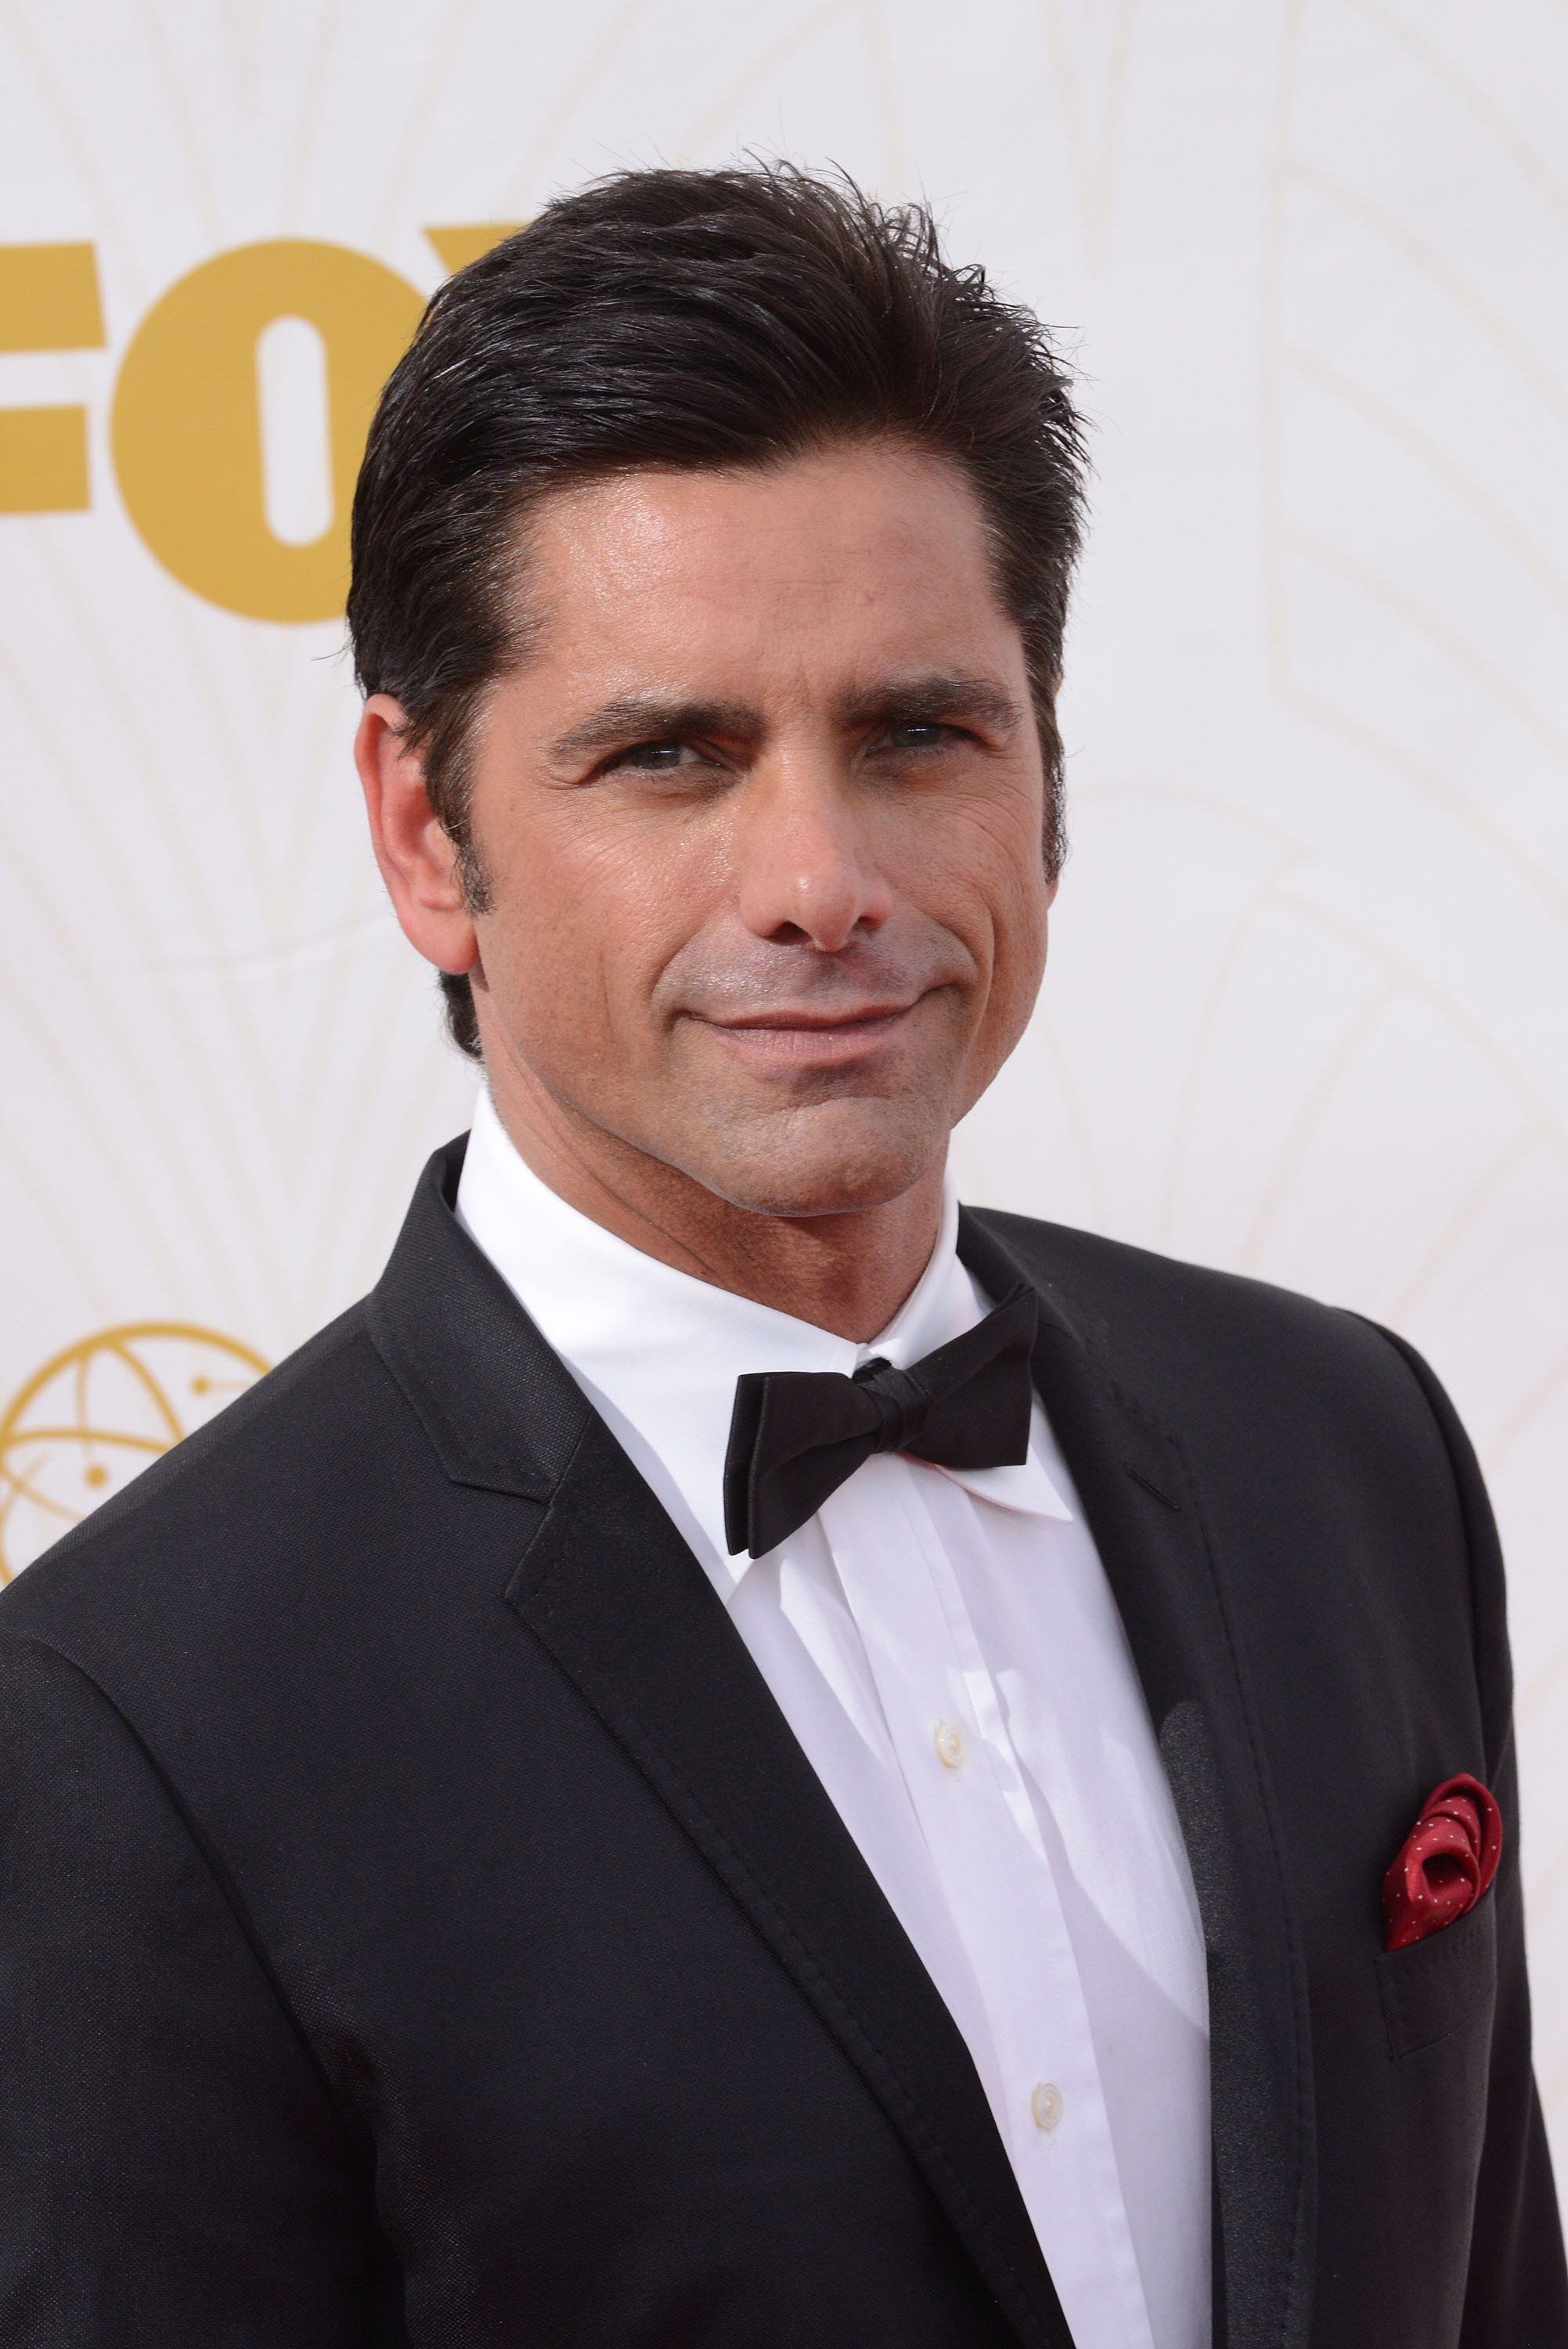 LOS ANGELES, CA - SEPTEMBER 20:  John Stamos attends the 67th Annual Primetime Emmy Awards at Microsoft Theater on September 20, 2015 in Los Angeles, California.  (Photo by C Flanigan/Getty Images)